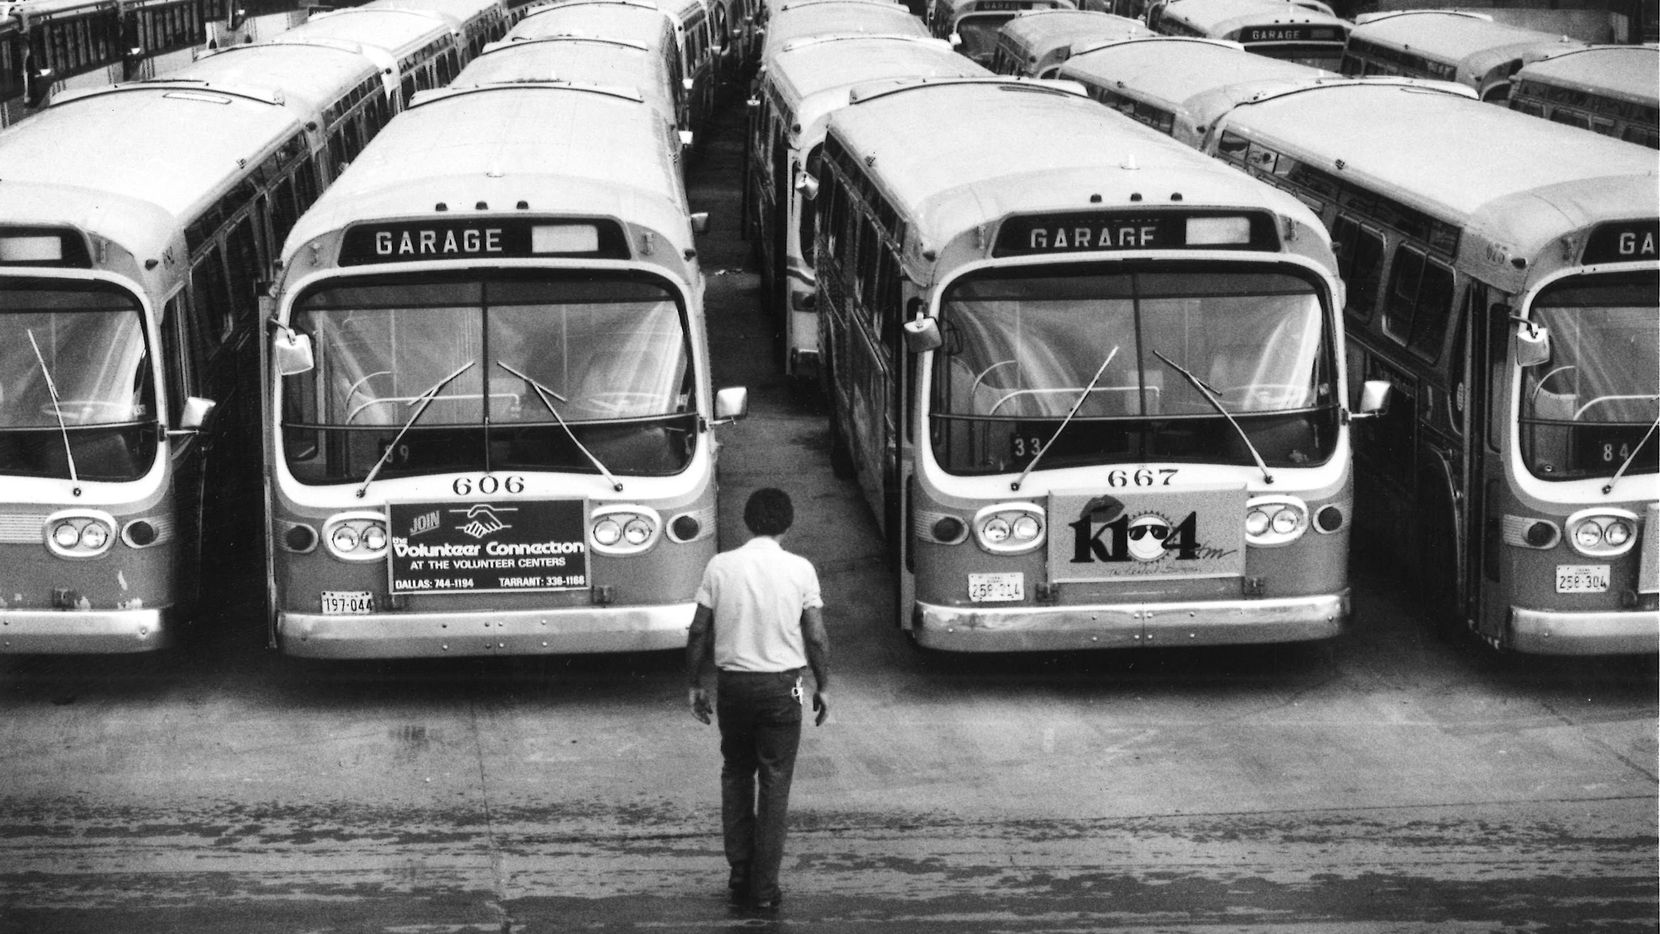 DART buses at a garage off of I-35 south of Dallas.